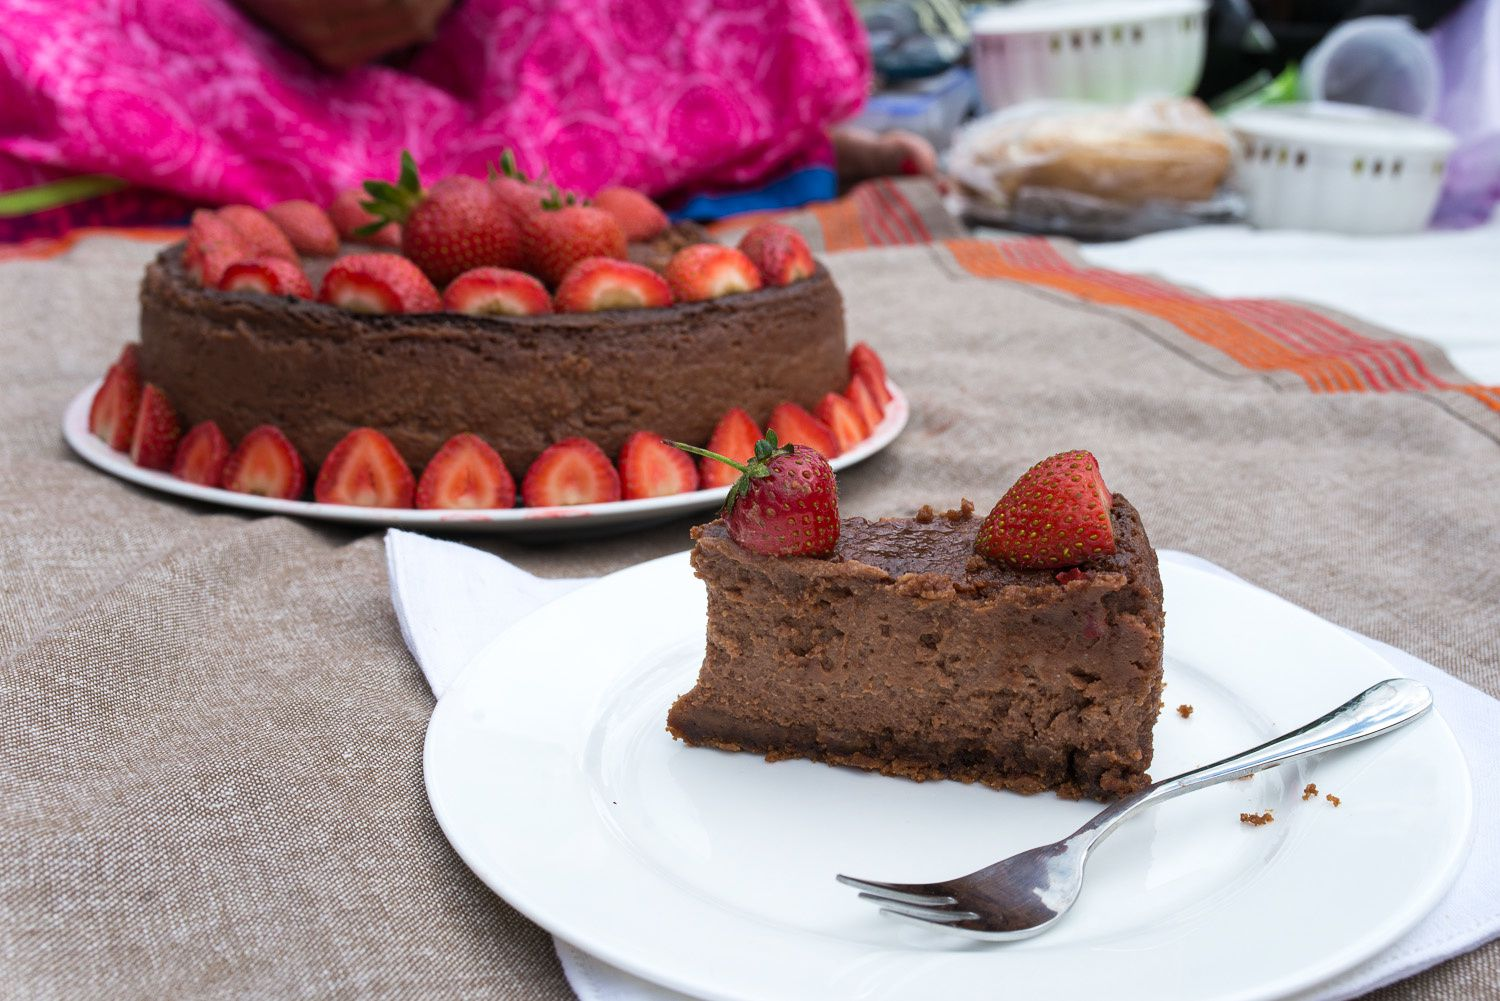 Eggless Double Chocolate Baked Cheesecake with Strawberries